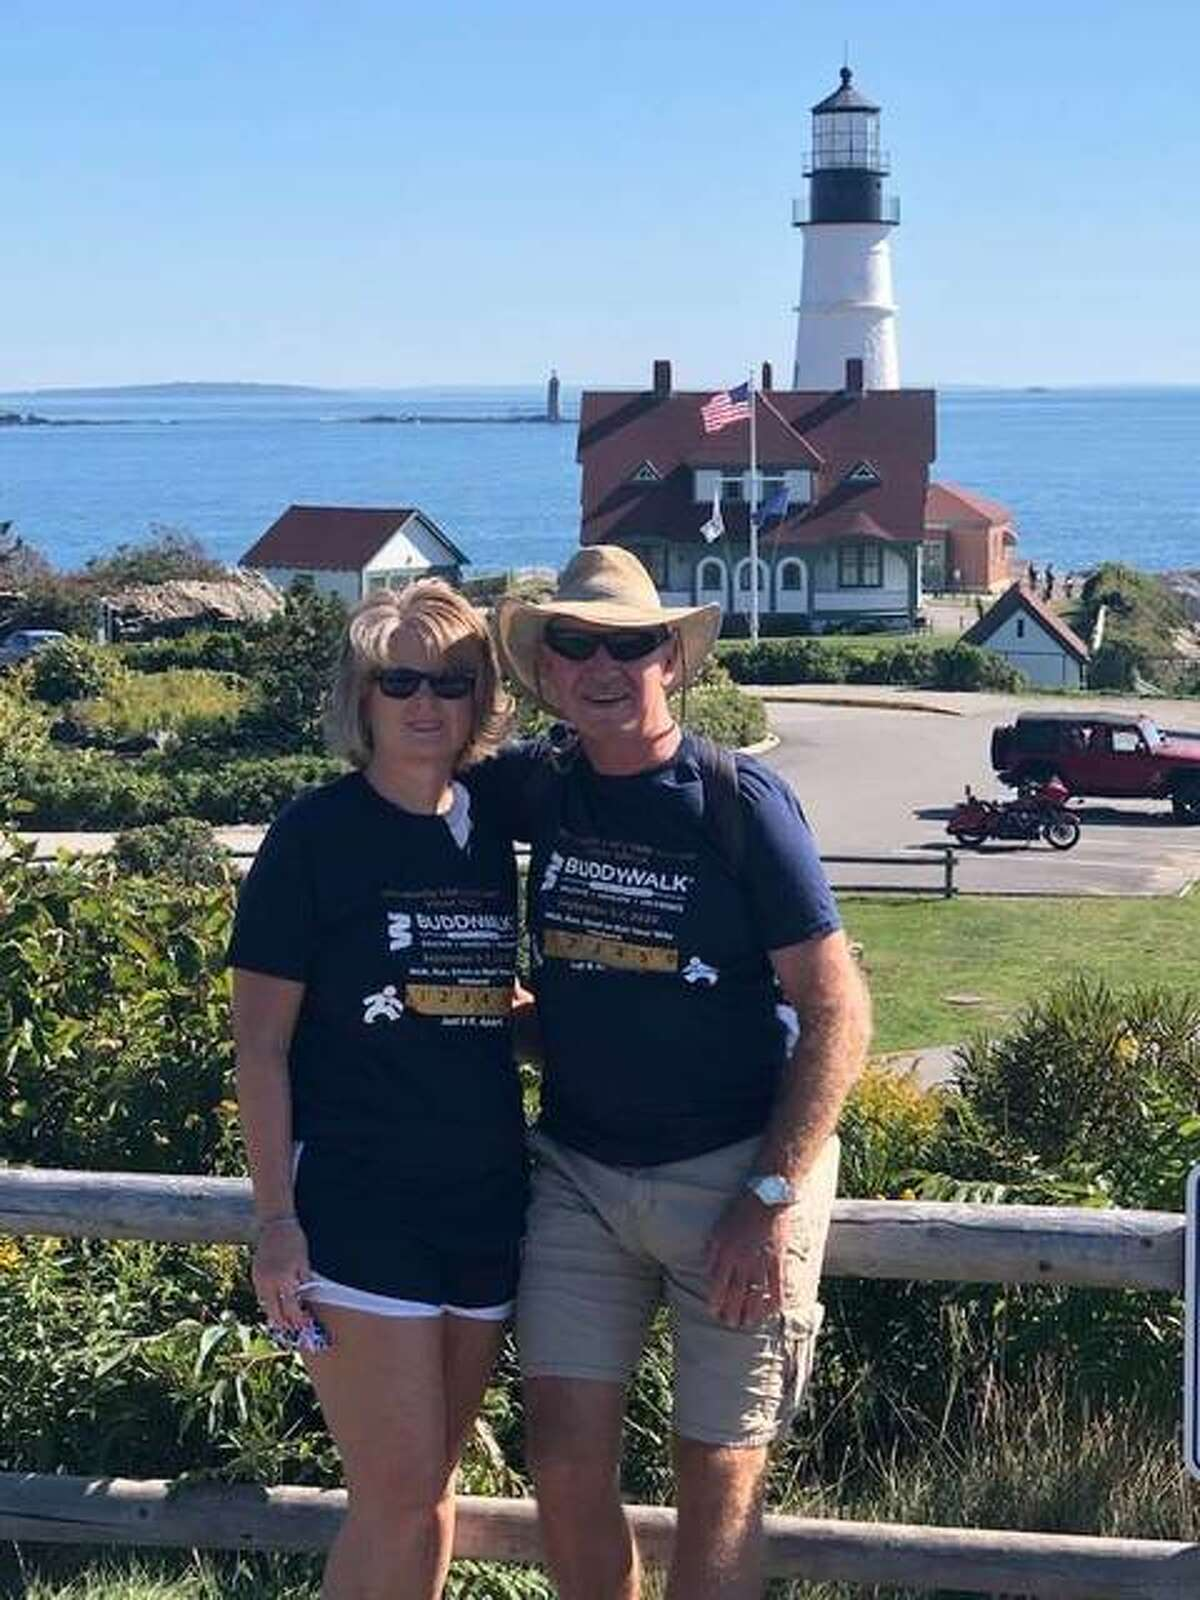 Pat and Linda Timmermann took their virtual Buddy Walk all the way up to Maine.